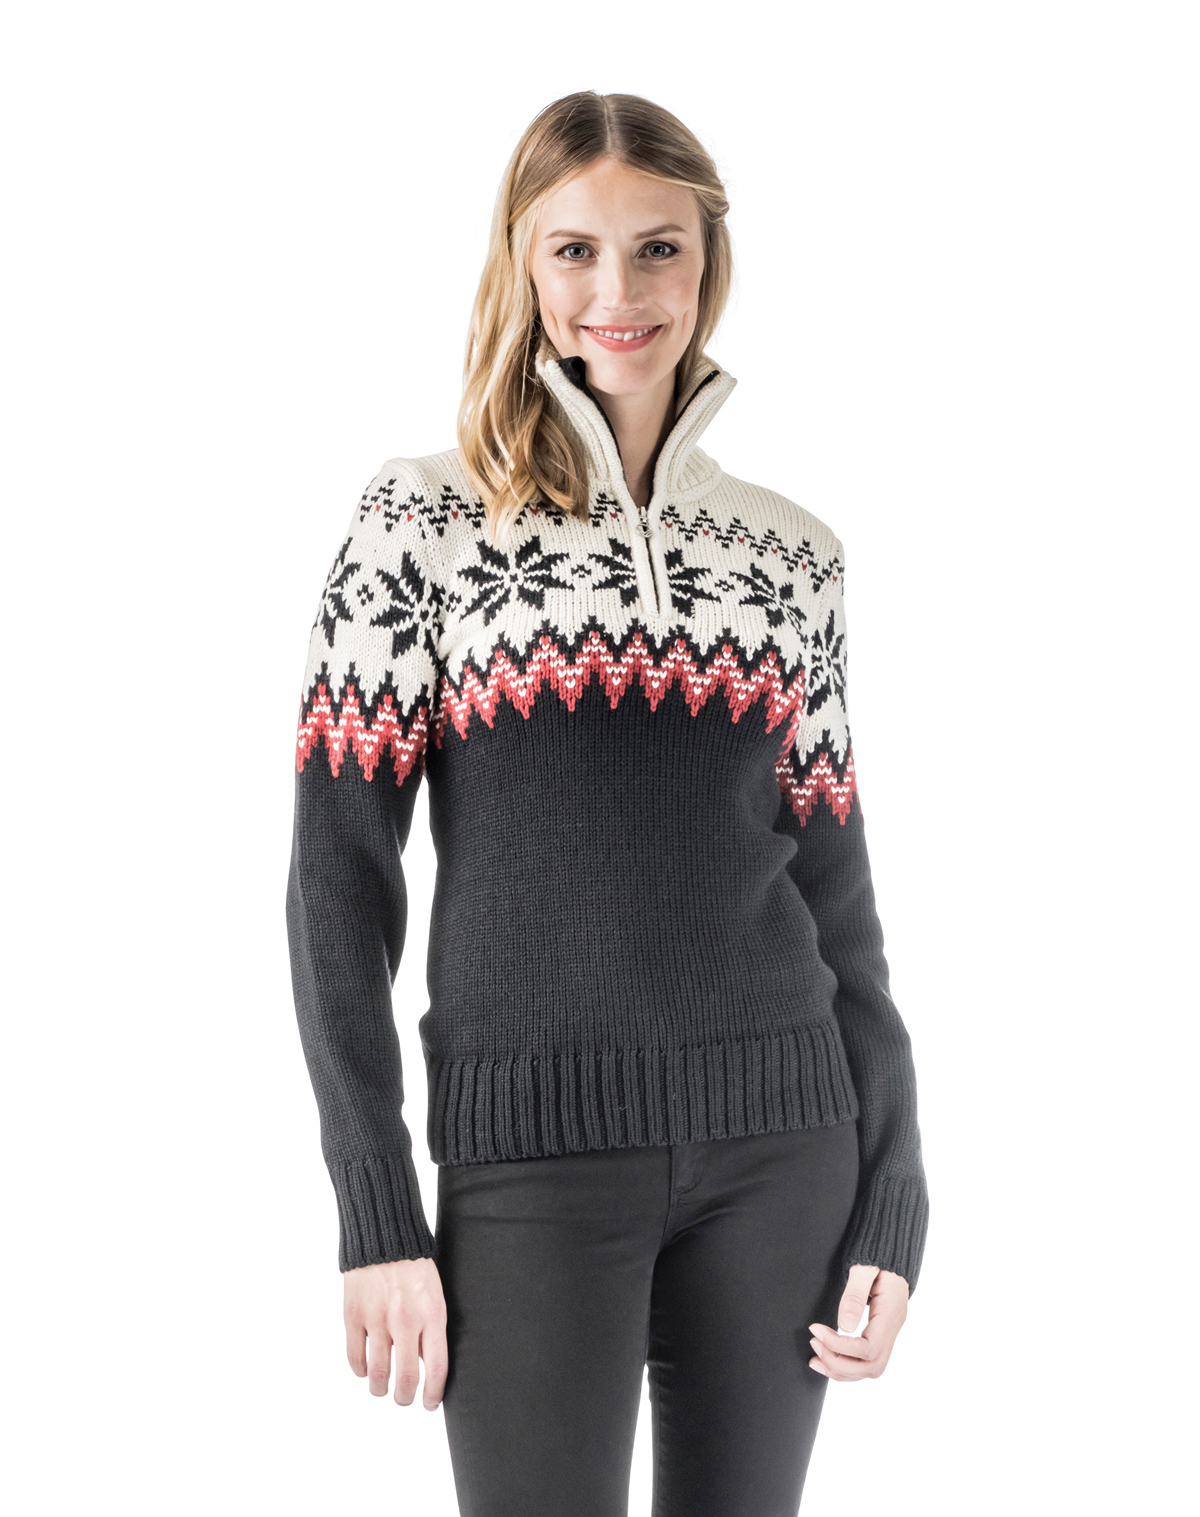 Myking Feminine Sweater